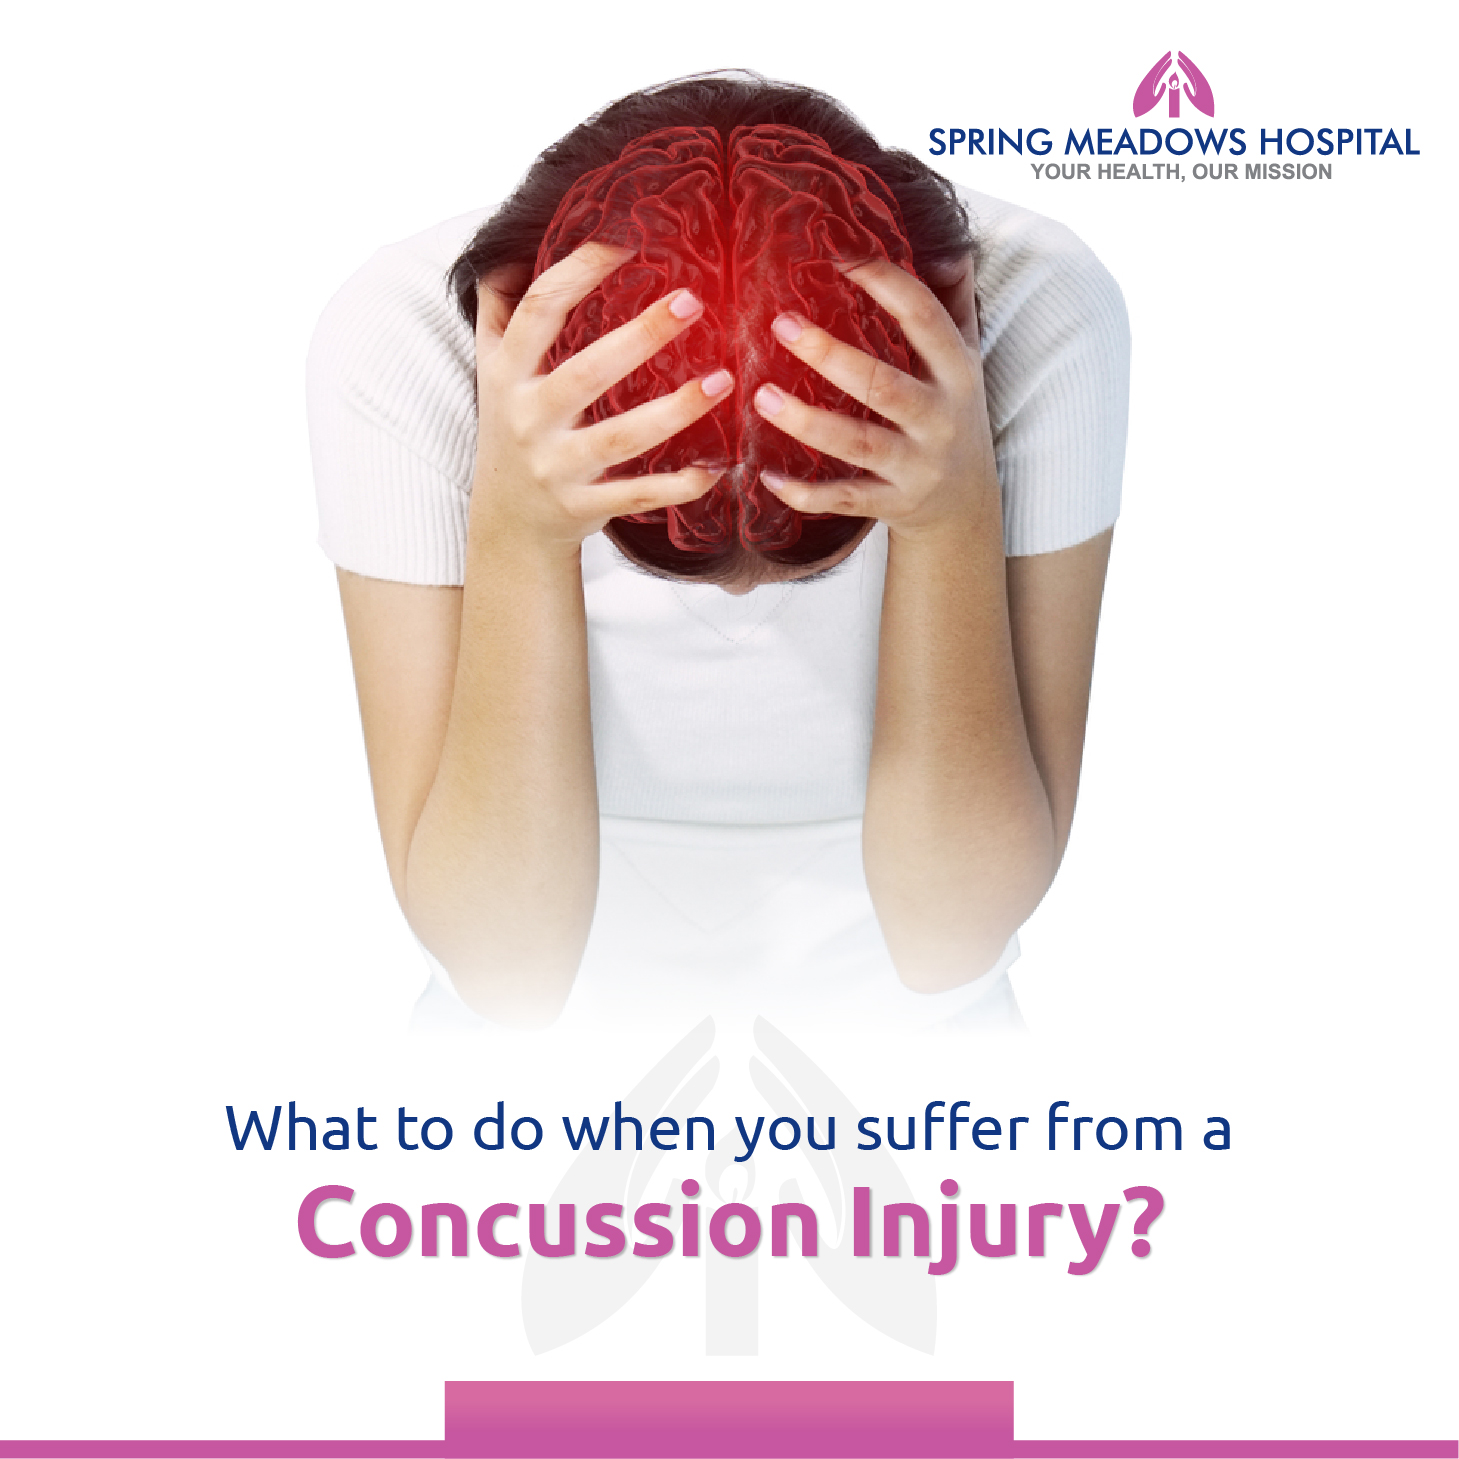 What to do when you suffer from a concussion injury?